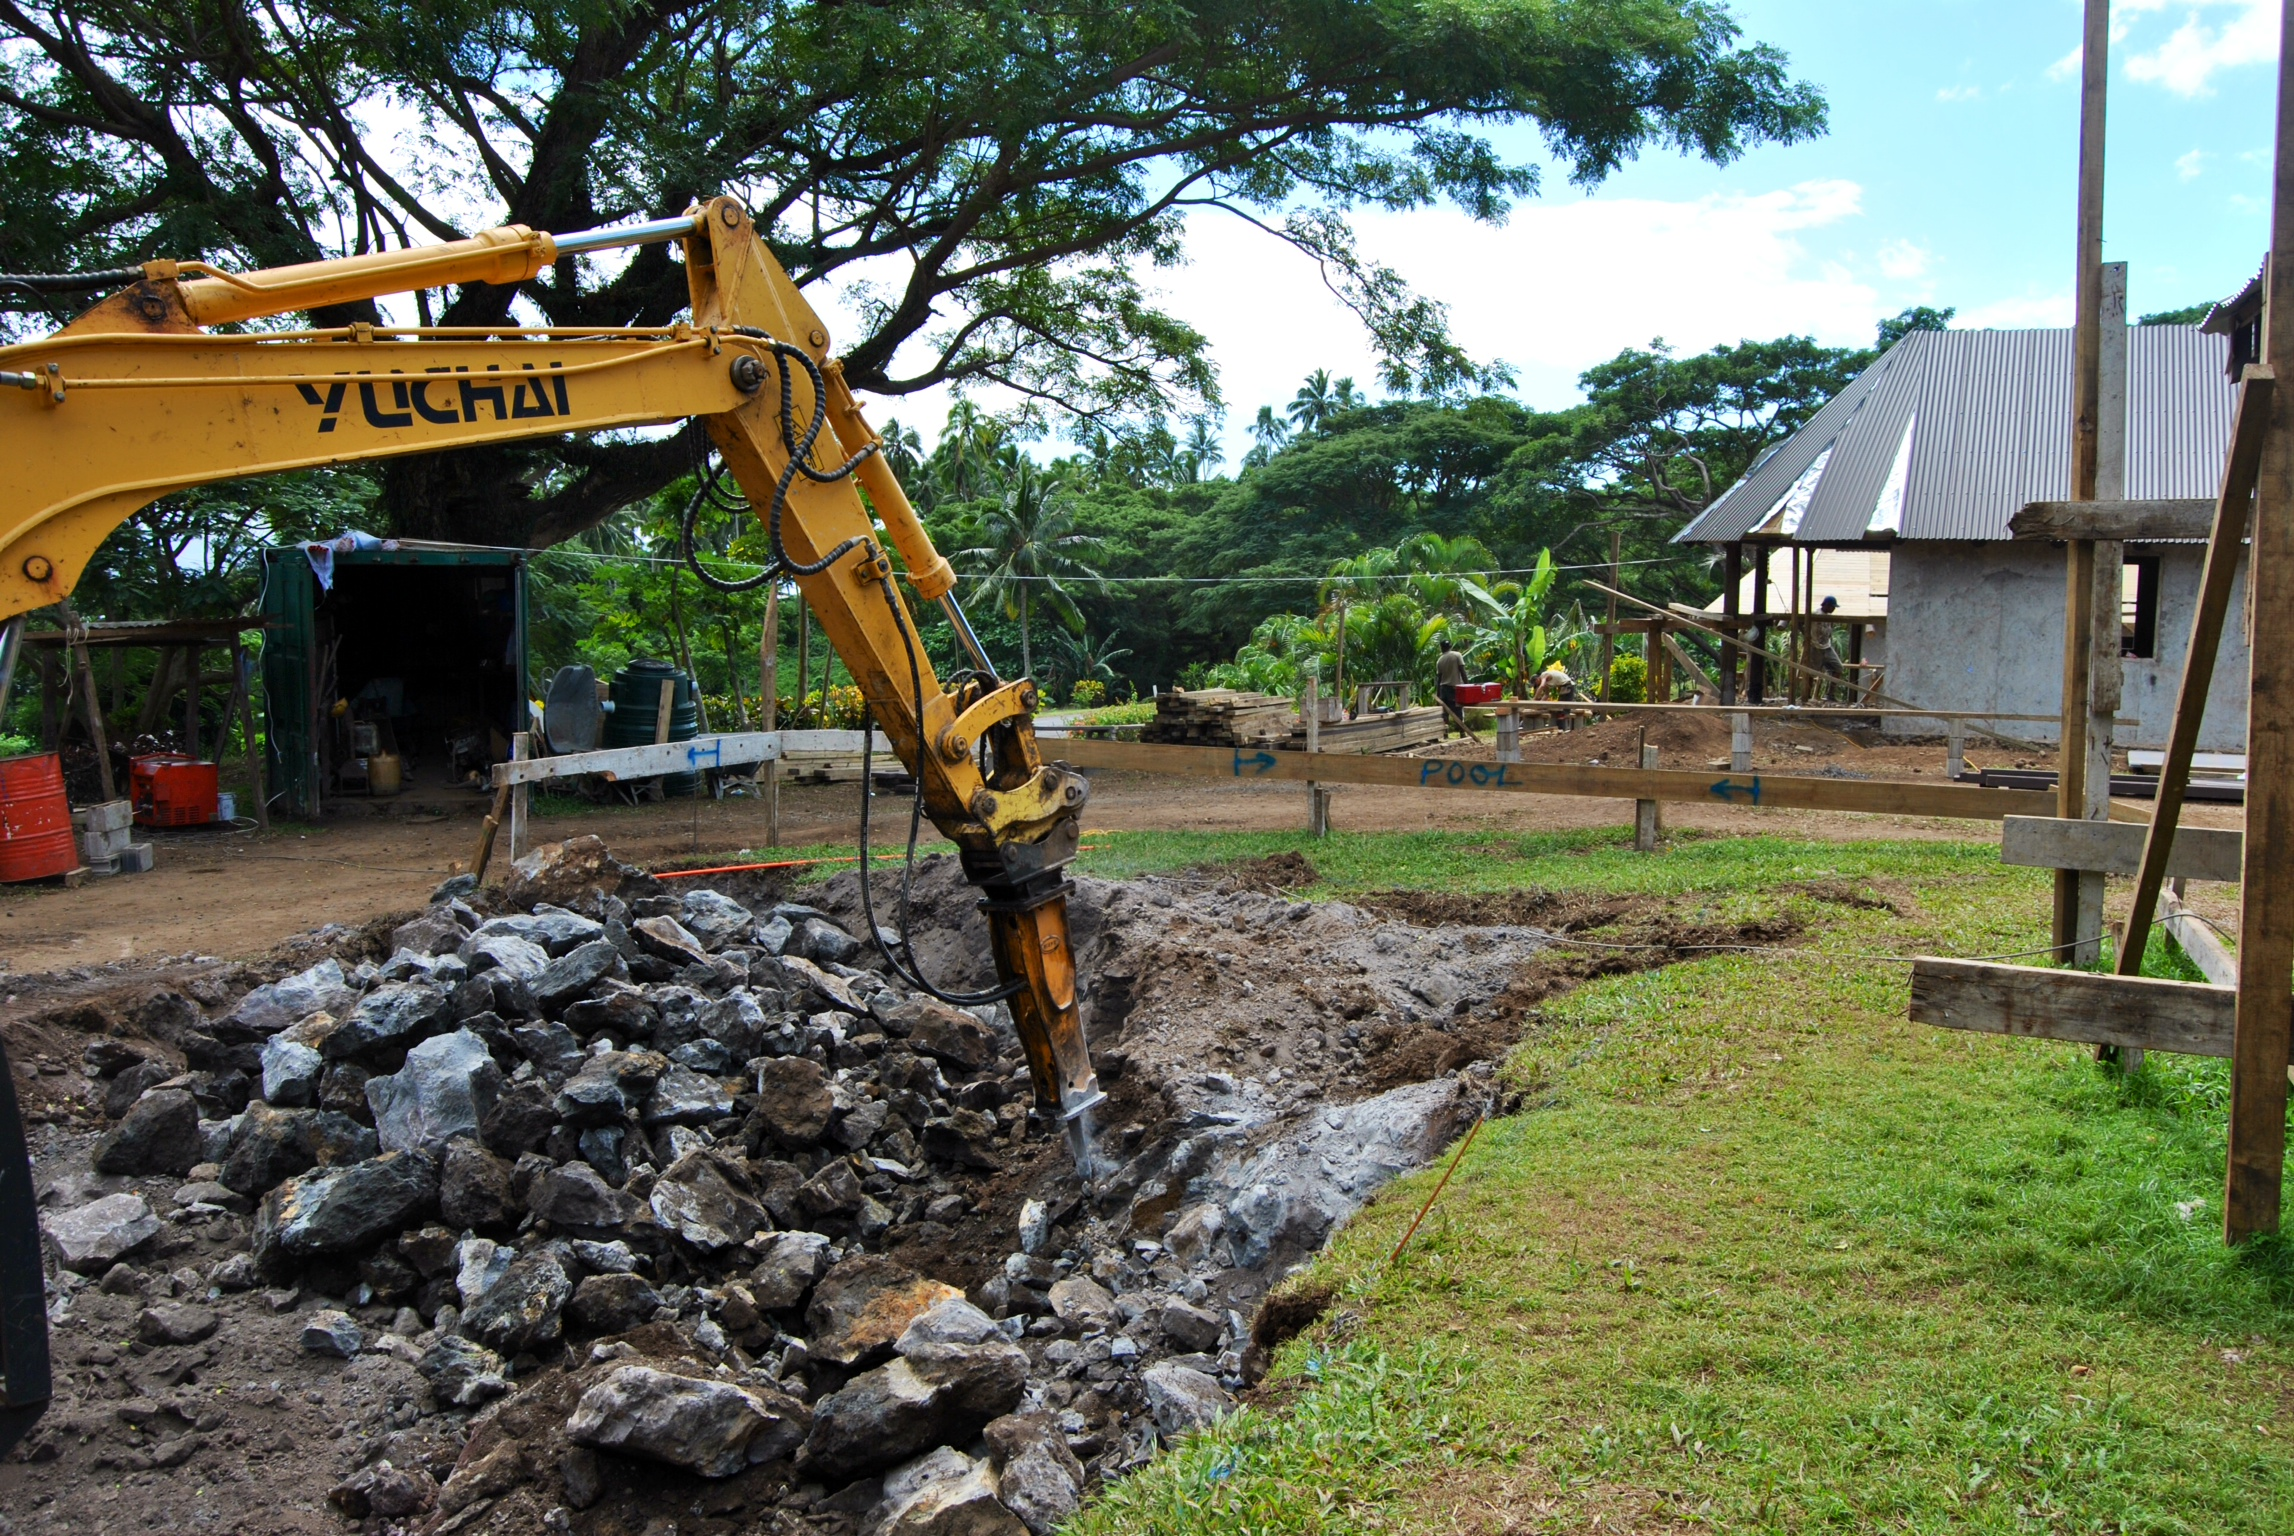 Oops! So, have you ever hit a lava tube during the installation of a swimming pool? Well we did, and all I can say is let's hear if for the yellow iron! I suspect the rubble will be put to good use.